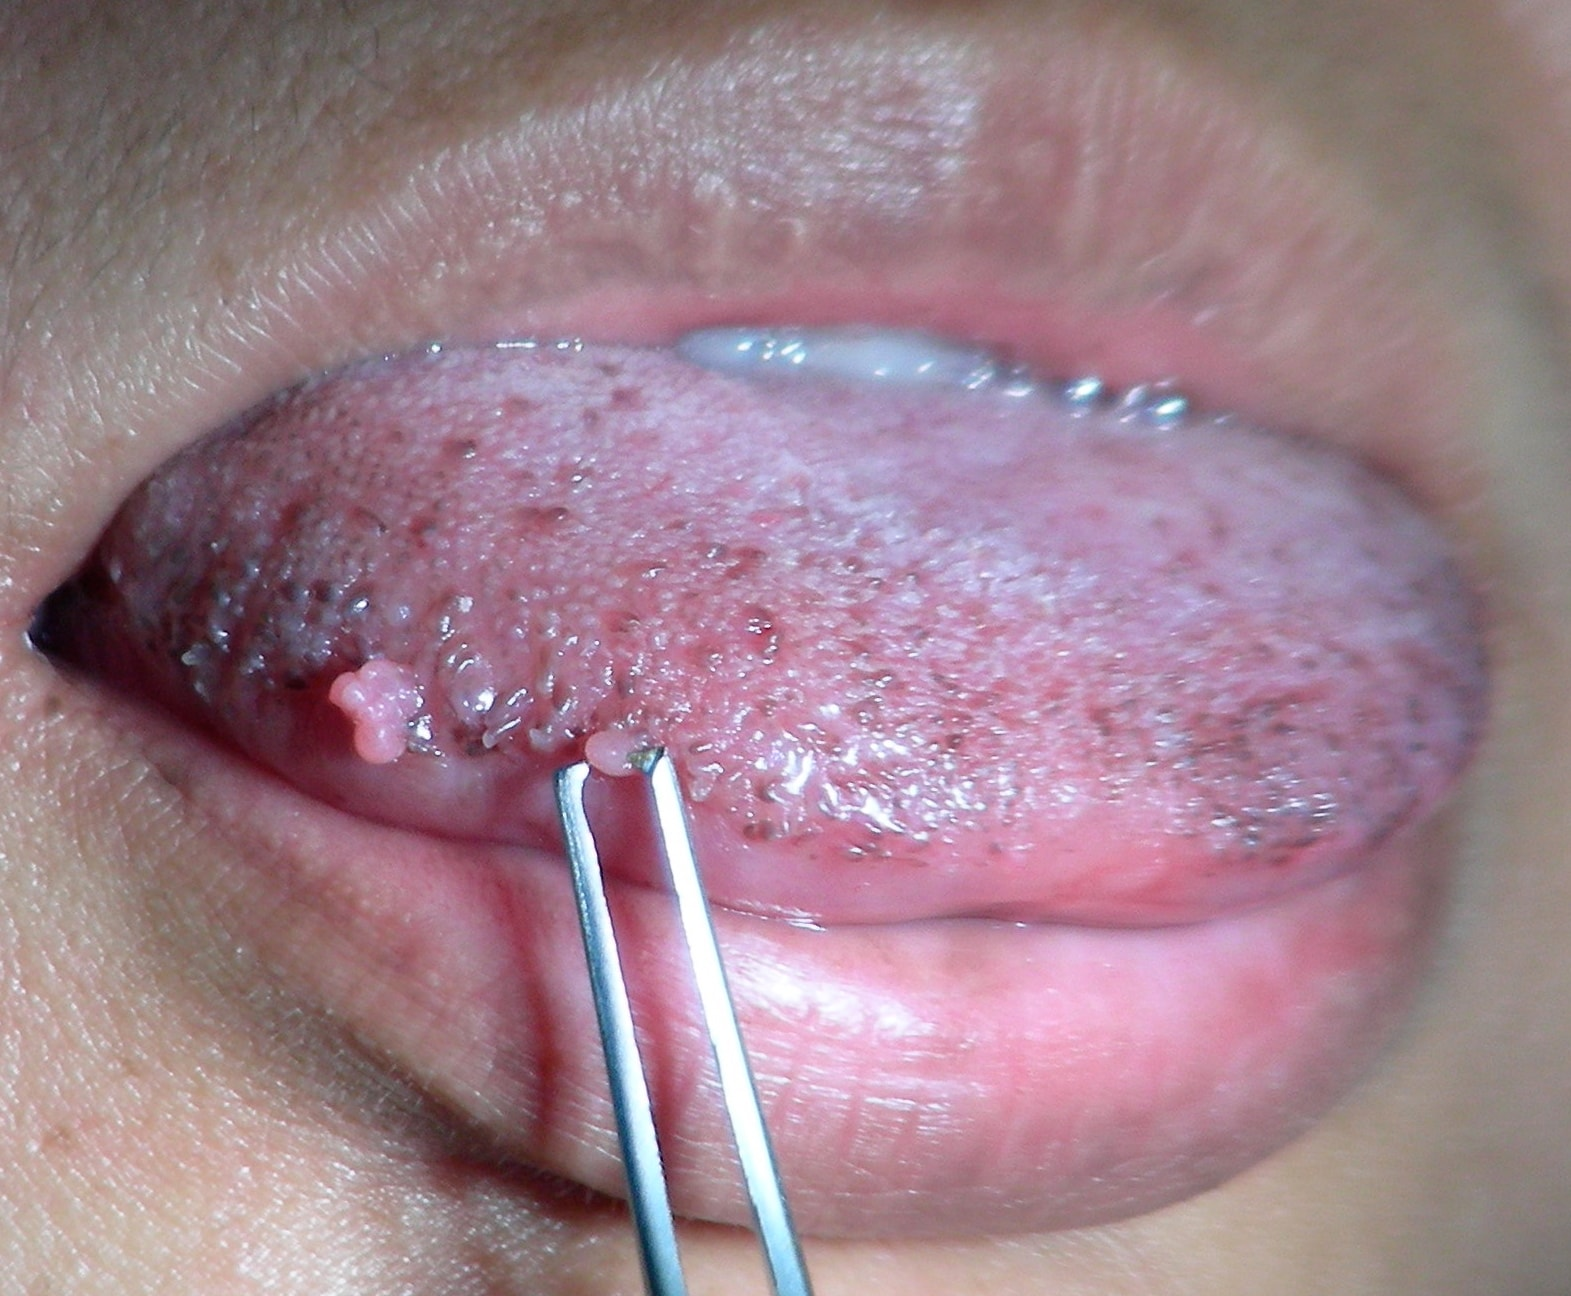 small papilloma on tongue